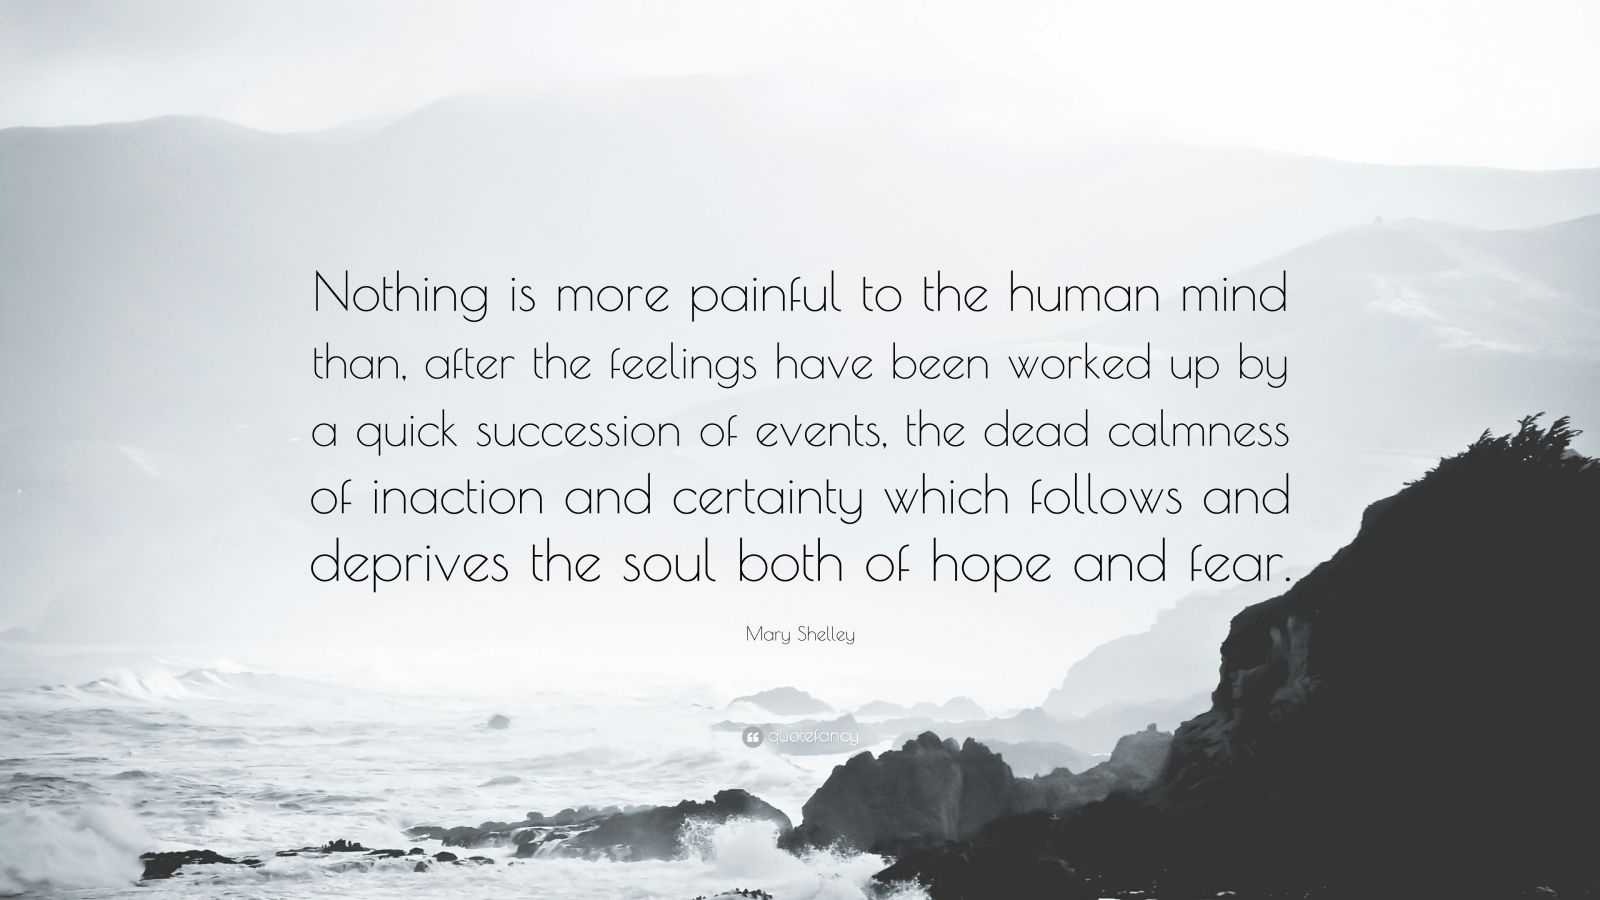 """Mary Shelley Quote: """"Nothing is more painful to the human mind than, after the feelings have been worked up by a quick succession of events, the dead calmness of inaction and certainty which follows and deprives the soul both of hope and fear."""""""